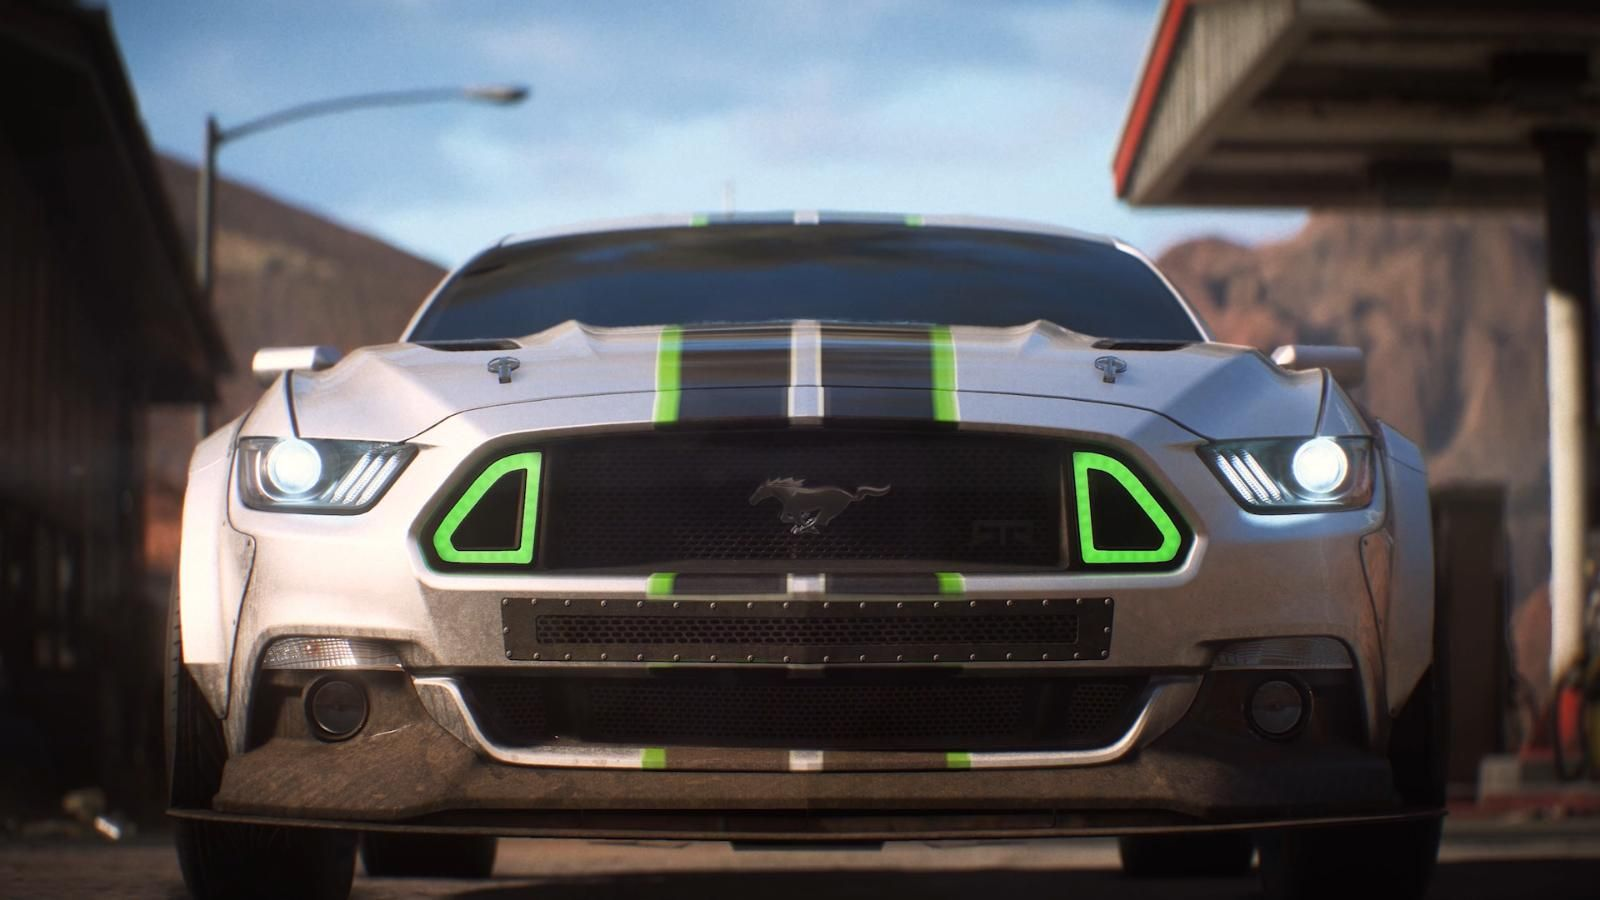 Pin By Akhil Nirwan On Fondos Need For Speed Need For Speed Cars Ford Mustang